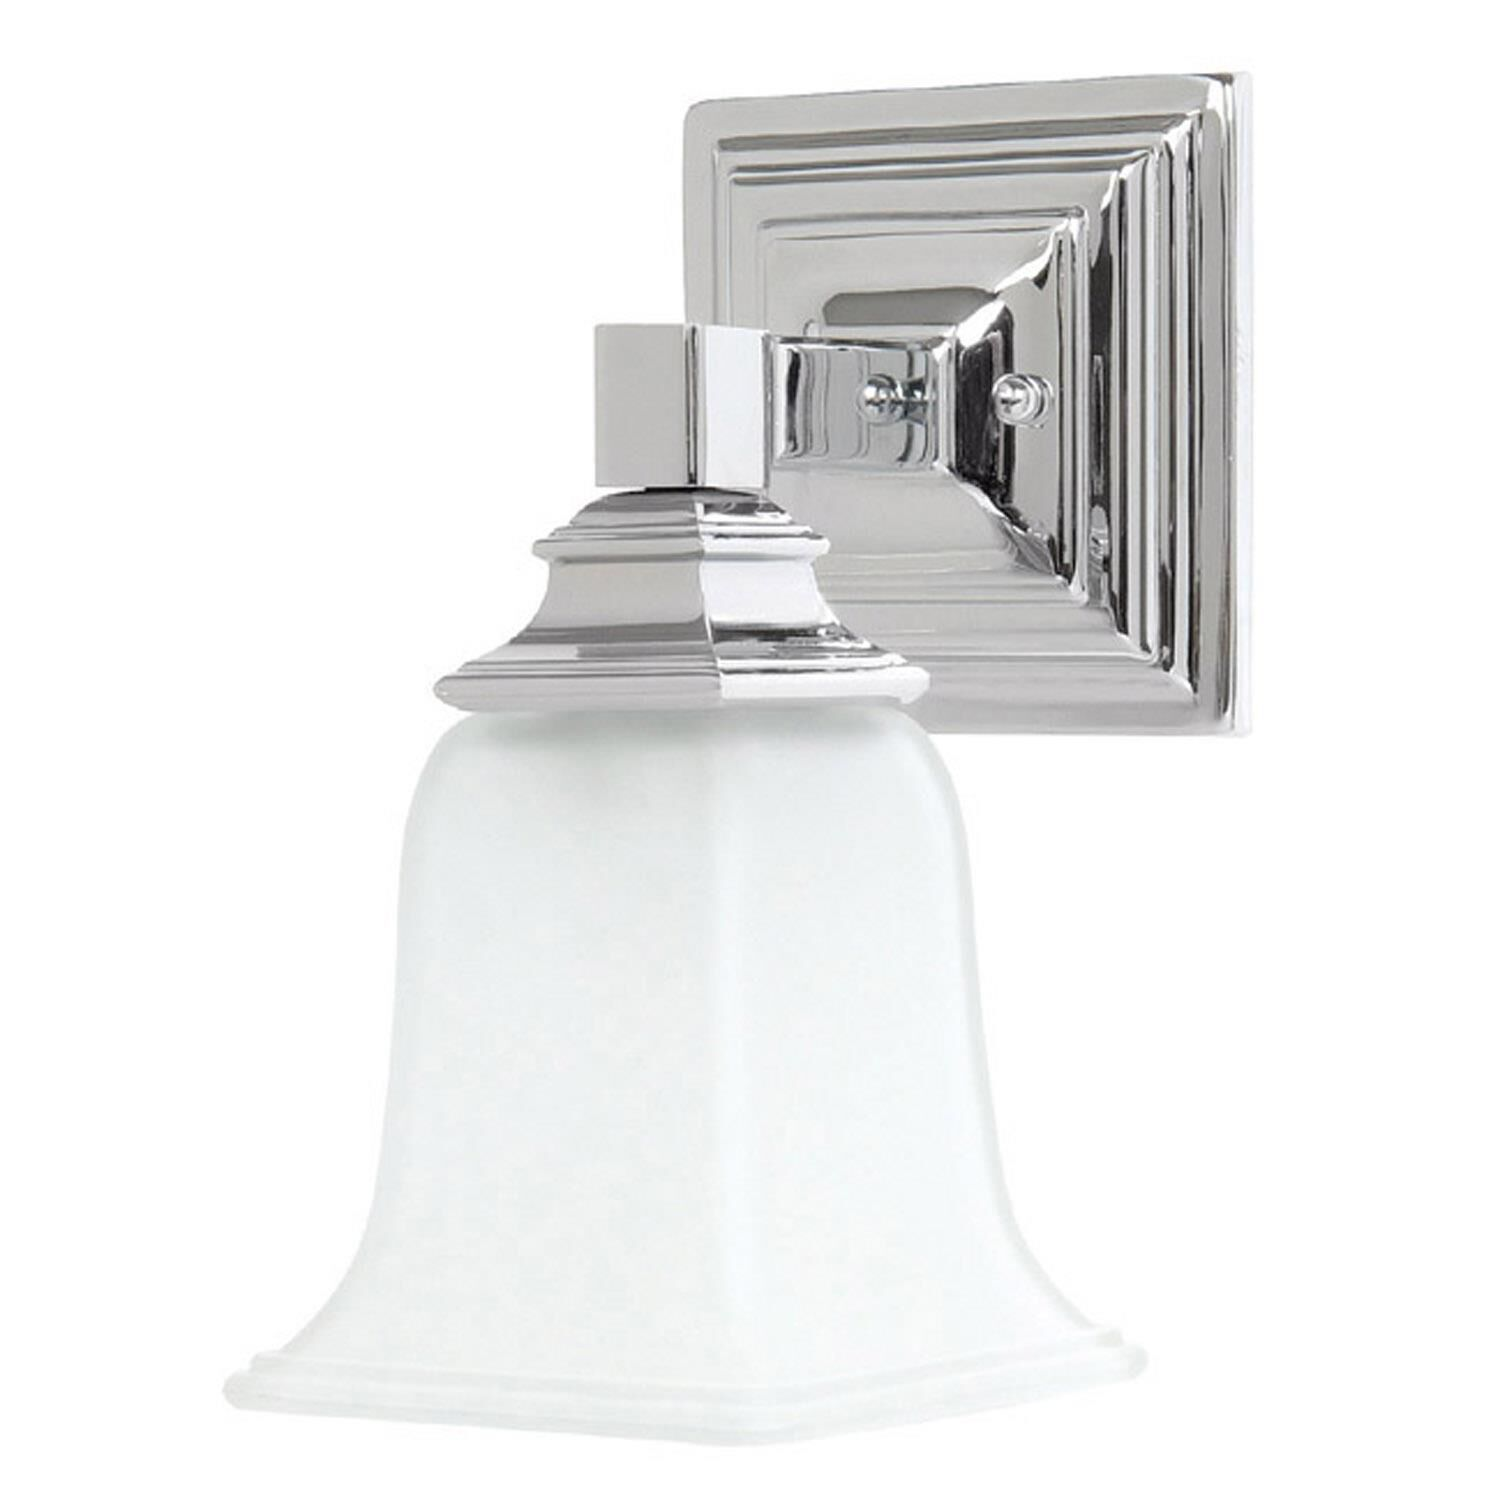 Capital Lighting Fixture Company Capital 6 Inch Wall Sconce Capital - 1061ch-142 - Traditional Wall Sconce